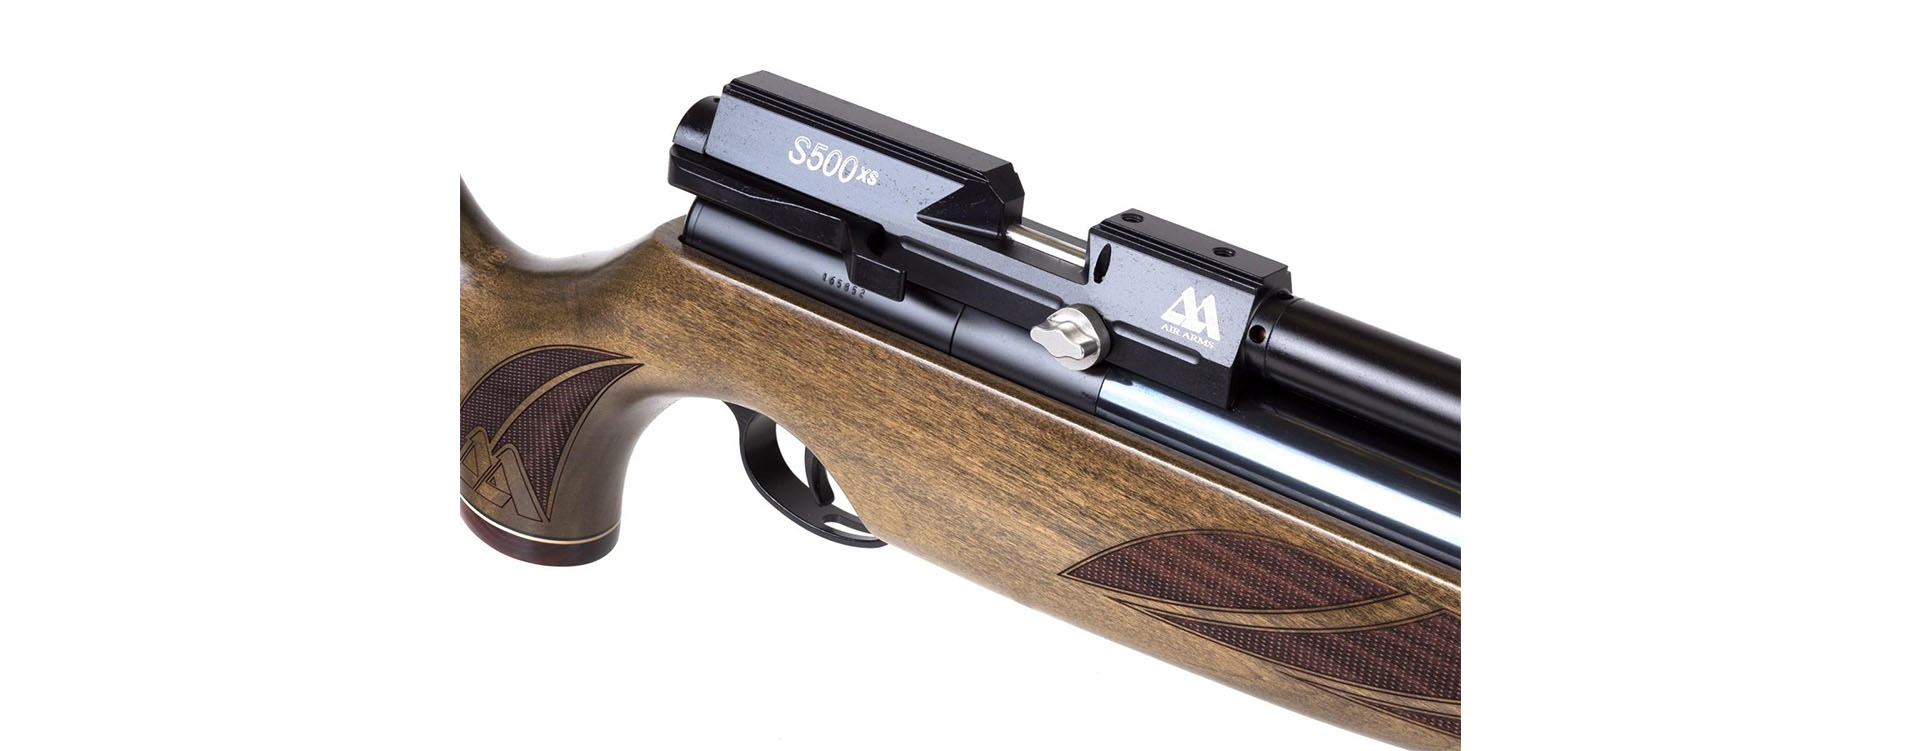 S500XS Xtra FAC Regulated PCP Air Rifle